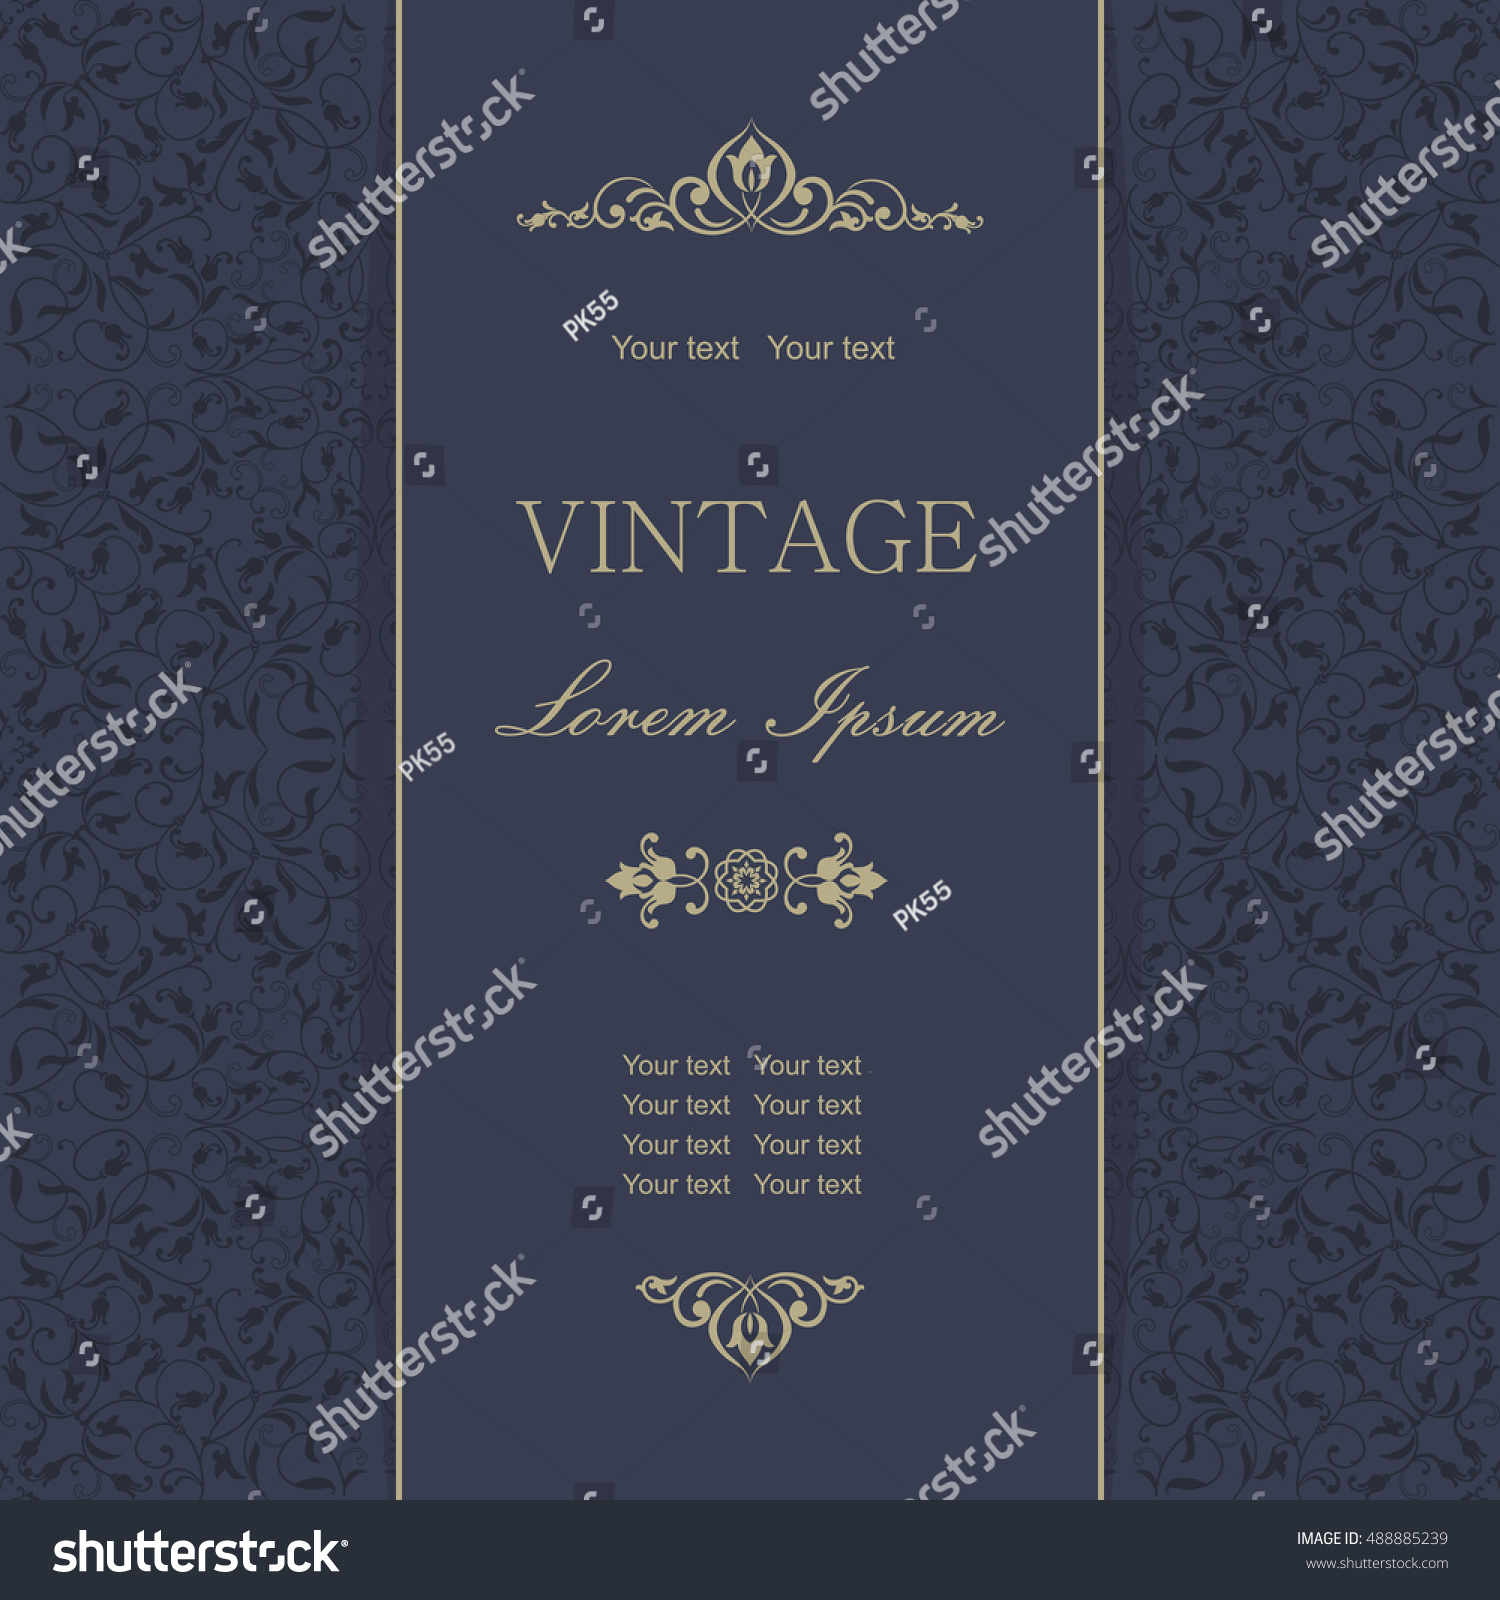 Template greeting cards invitations advertising banners stock template greeting cards invitations and advertising banners brochures with space for text vintage kristyandbryce Images